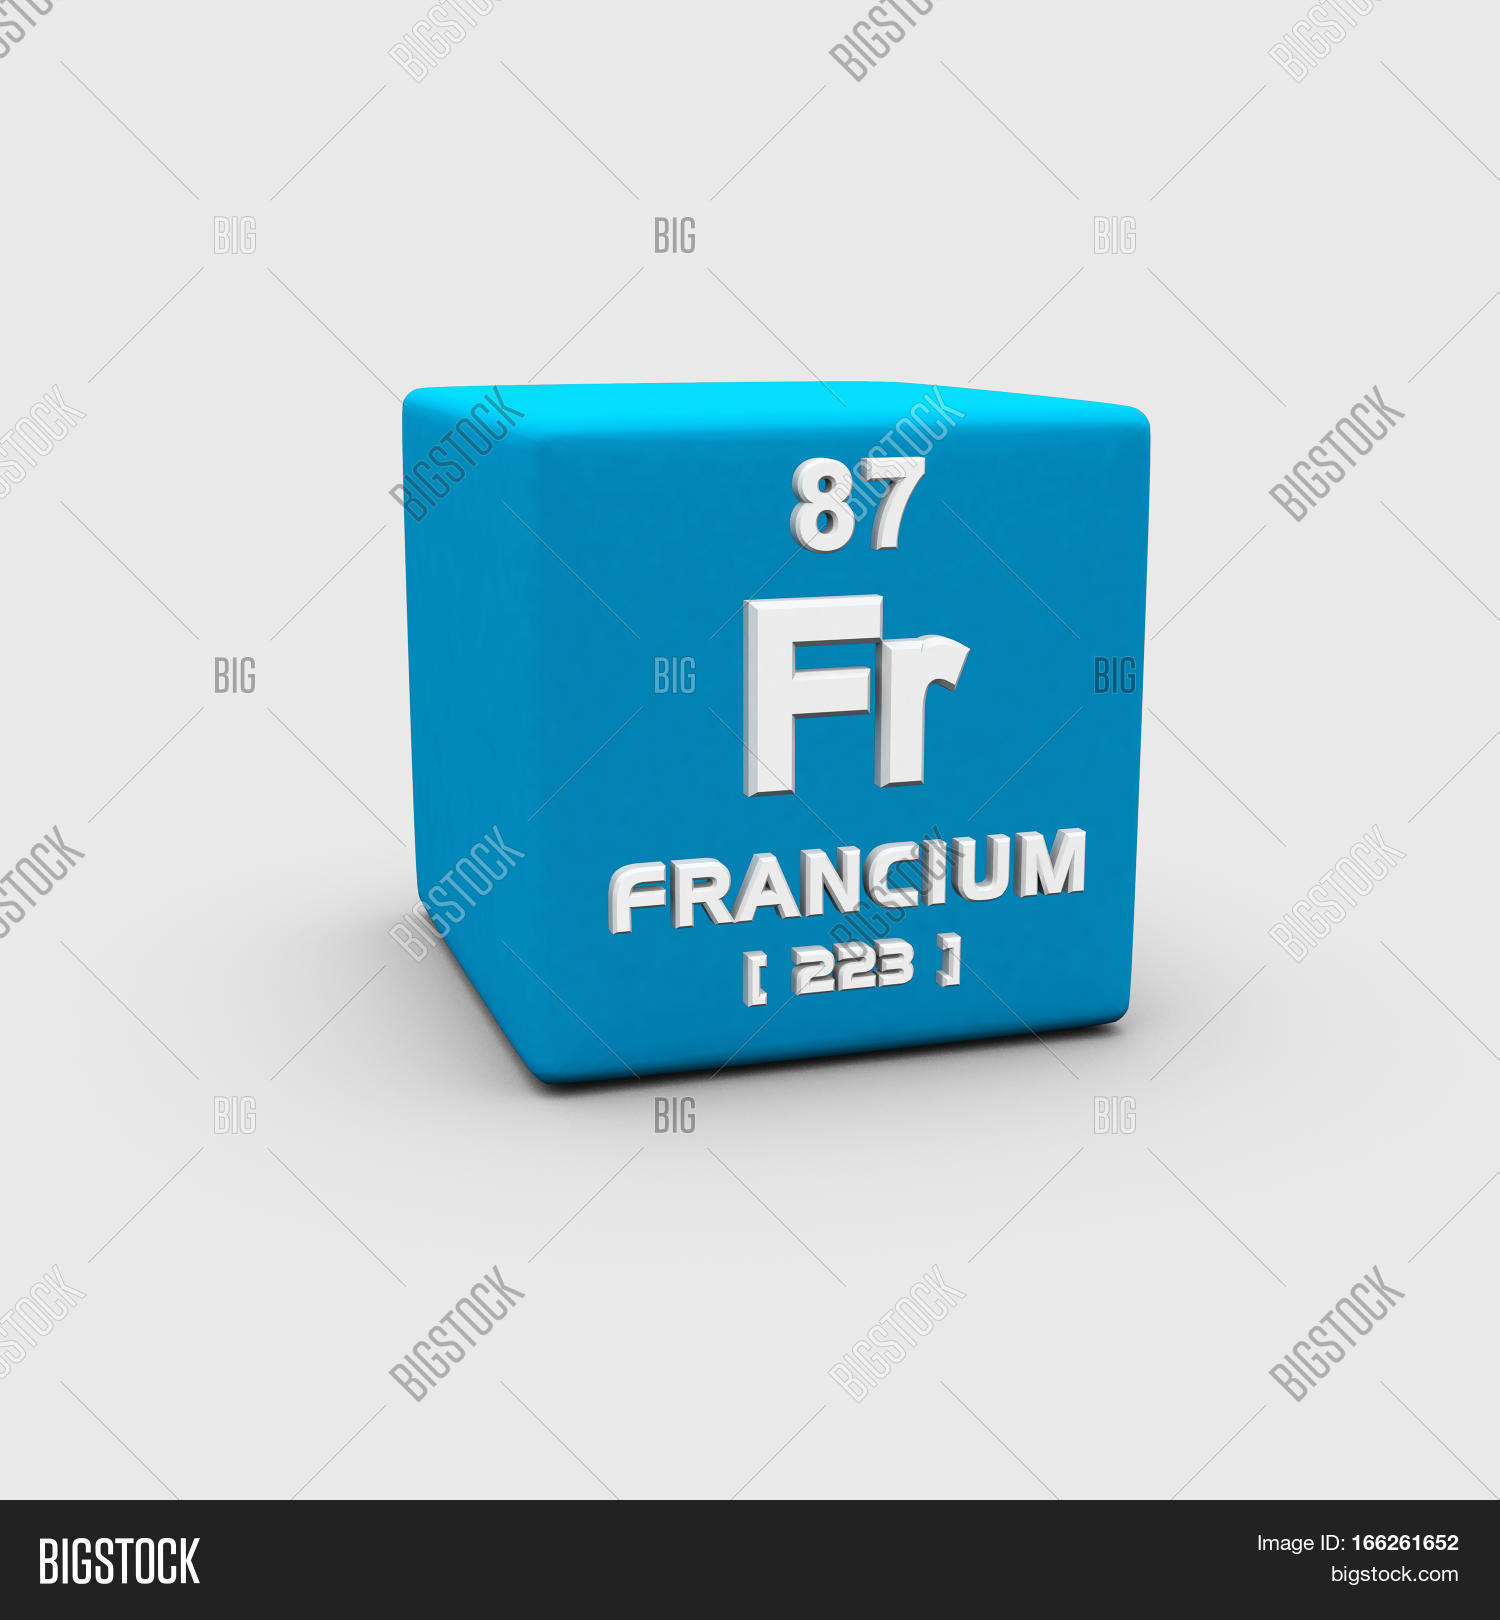 Francium Chemical Image Photo Free Trial Bigstock